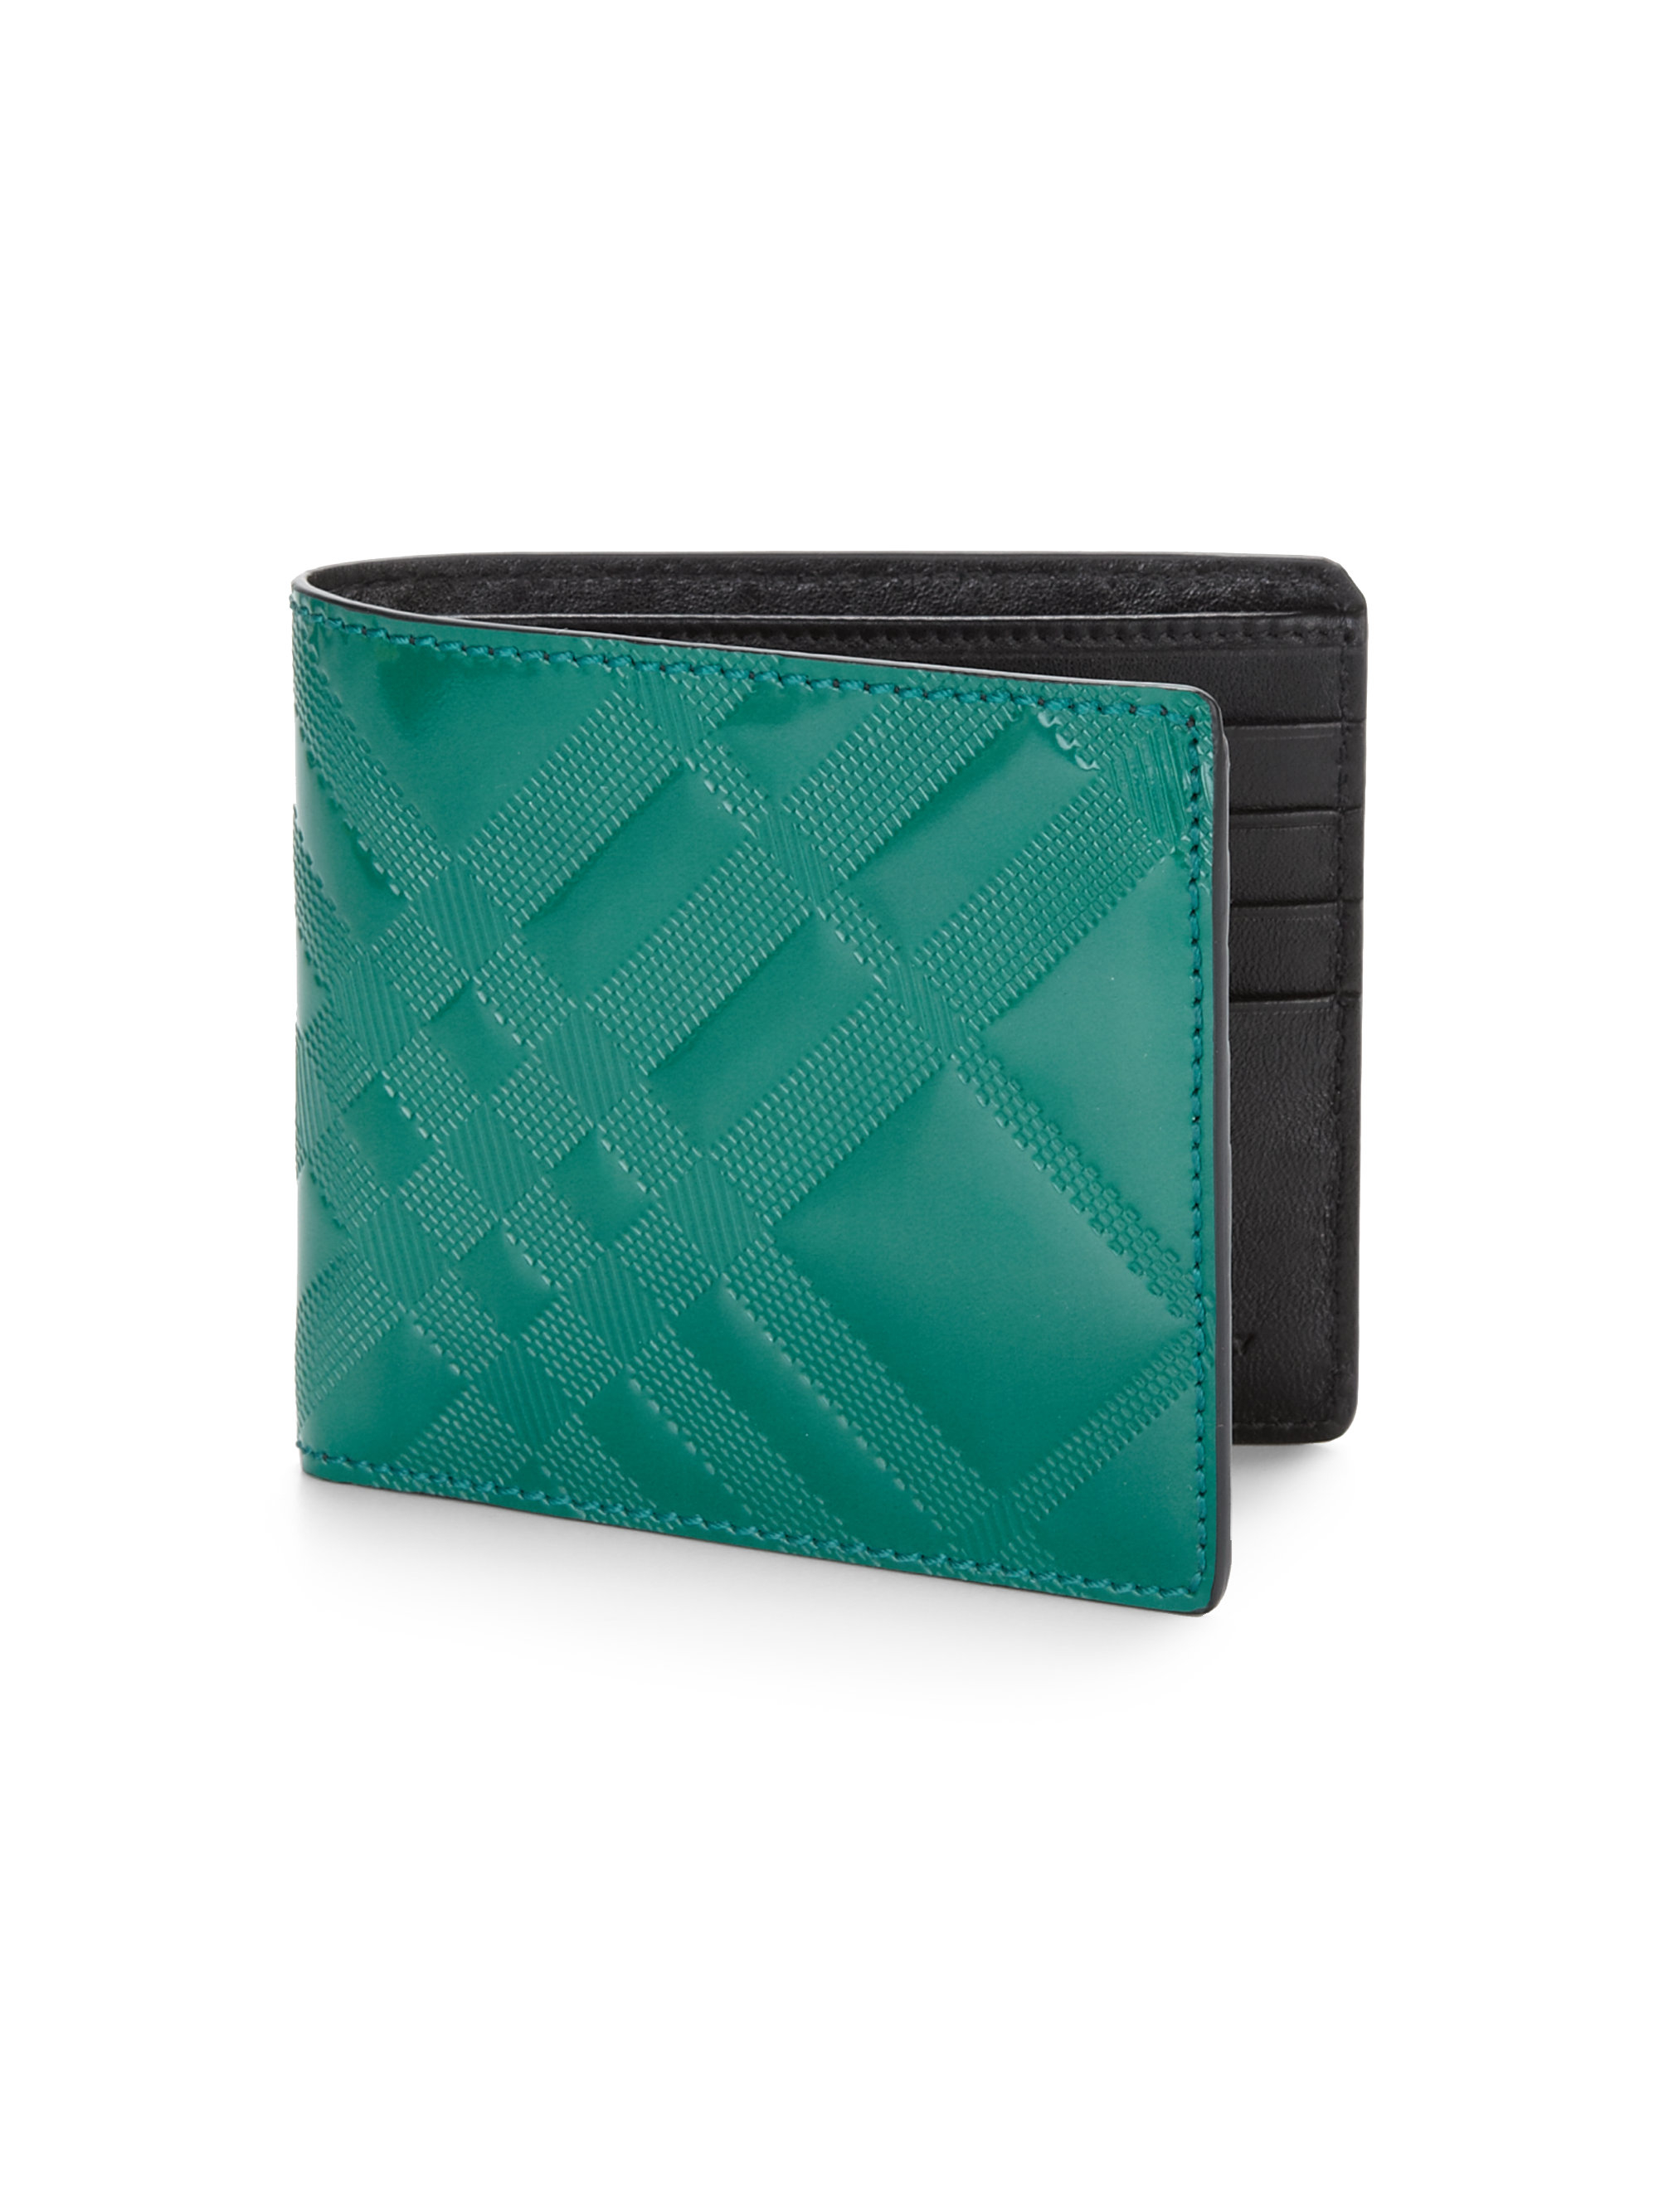 Lyst Burberry Leather Check Wallet in Green for Men